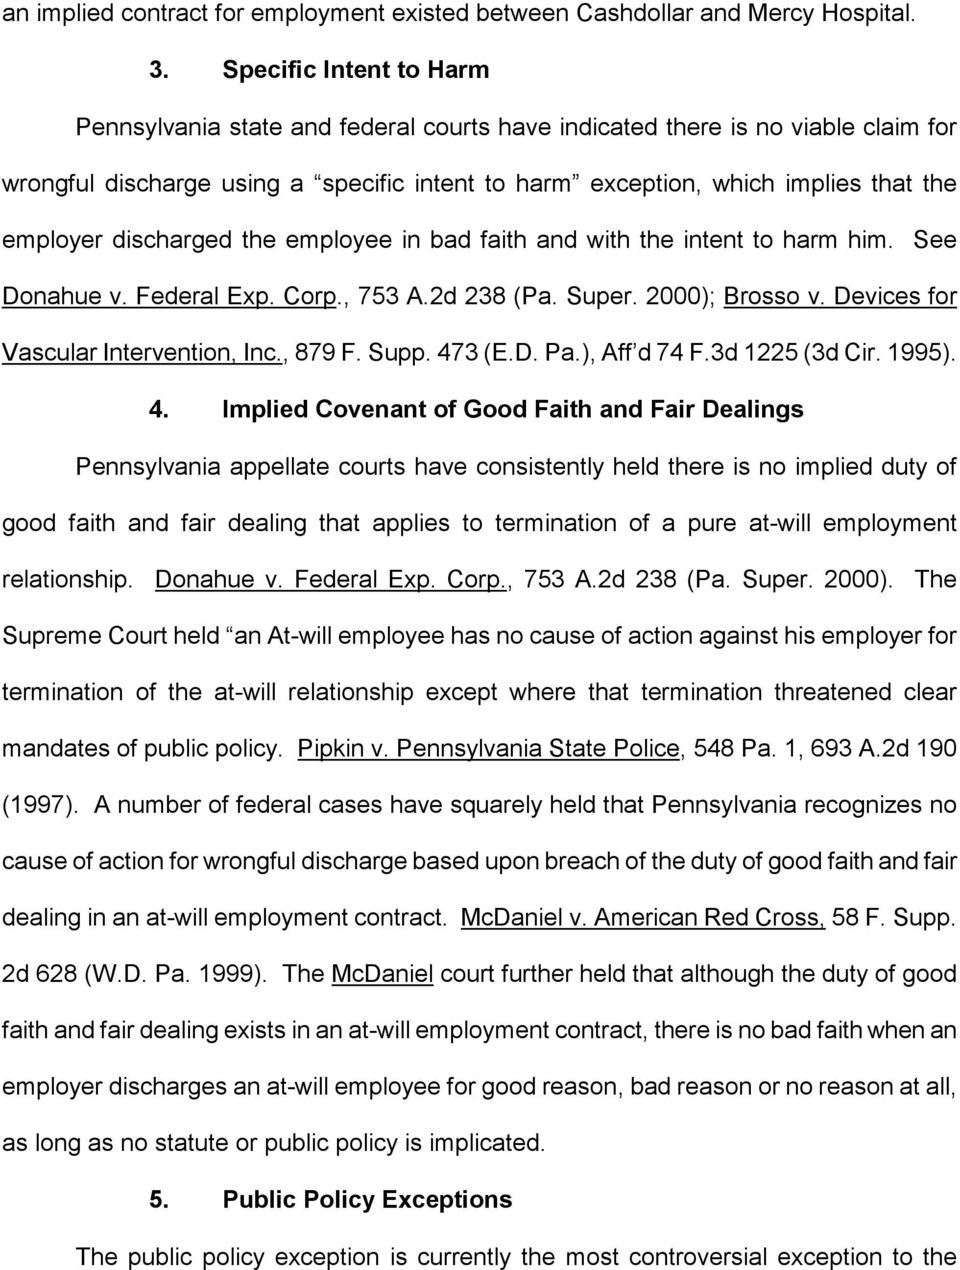 discharged the employee in bad faith and with the intent to harm him. See Donahue v. Federal Exp. Corp., 753 A.2d 238 (Pa. Super. 2000); Brosso v. Devices for Vascular Intervention, Inc., 879 F. Supp.